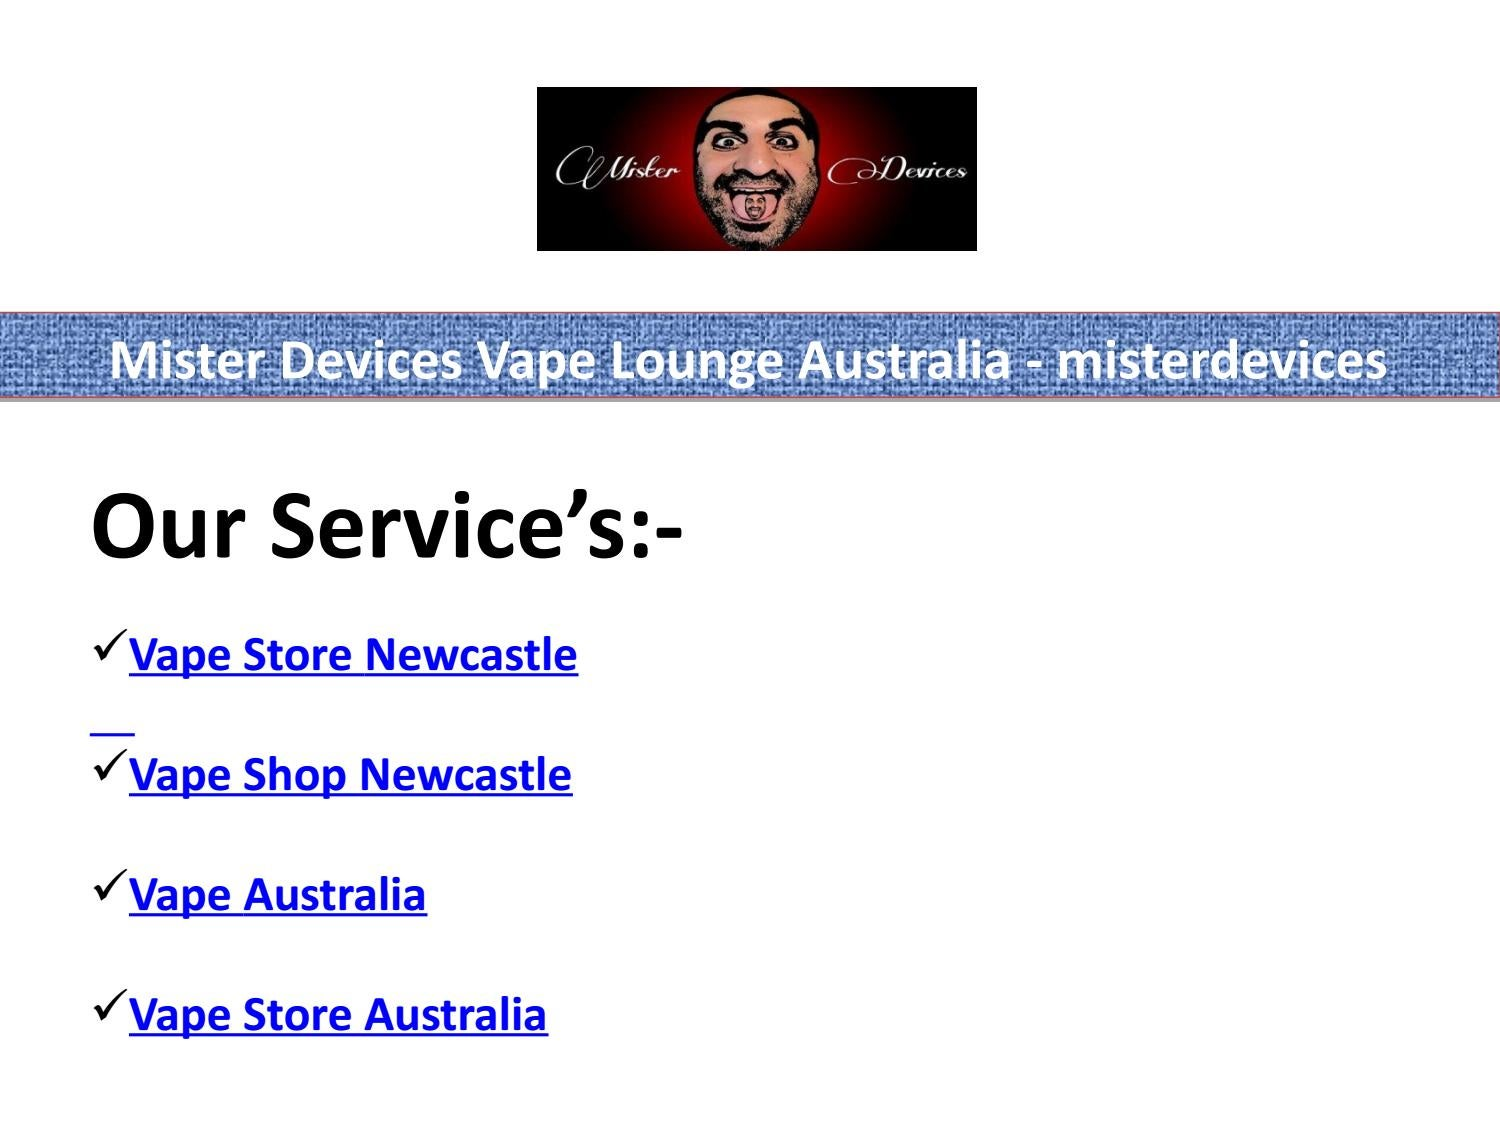 Mister Devices Vape Lounge Australia - misterdevices by